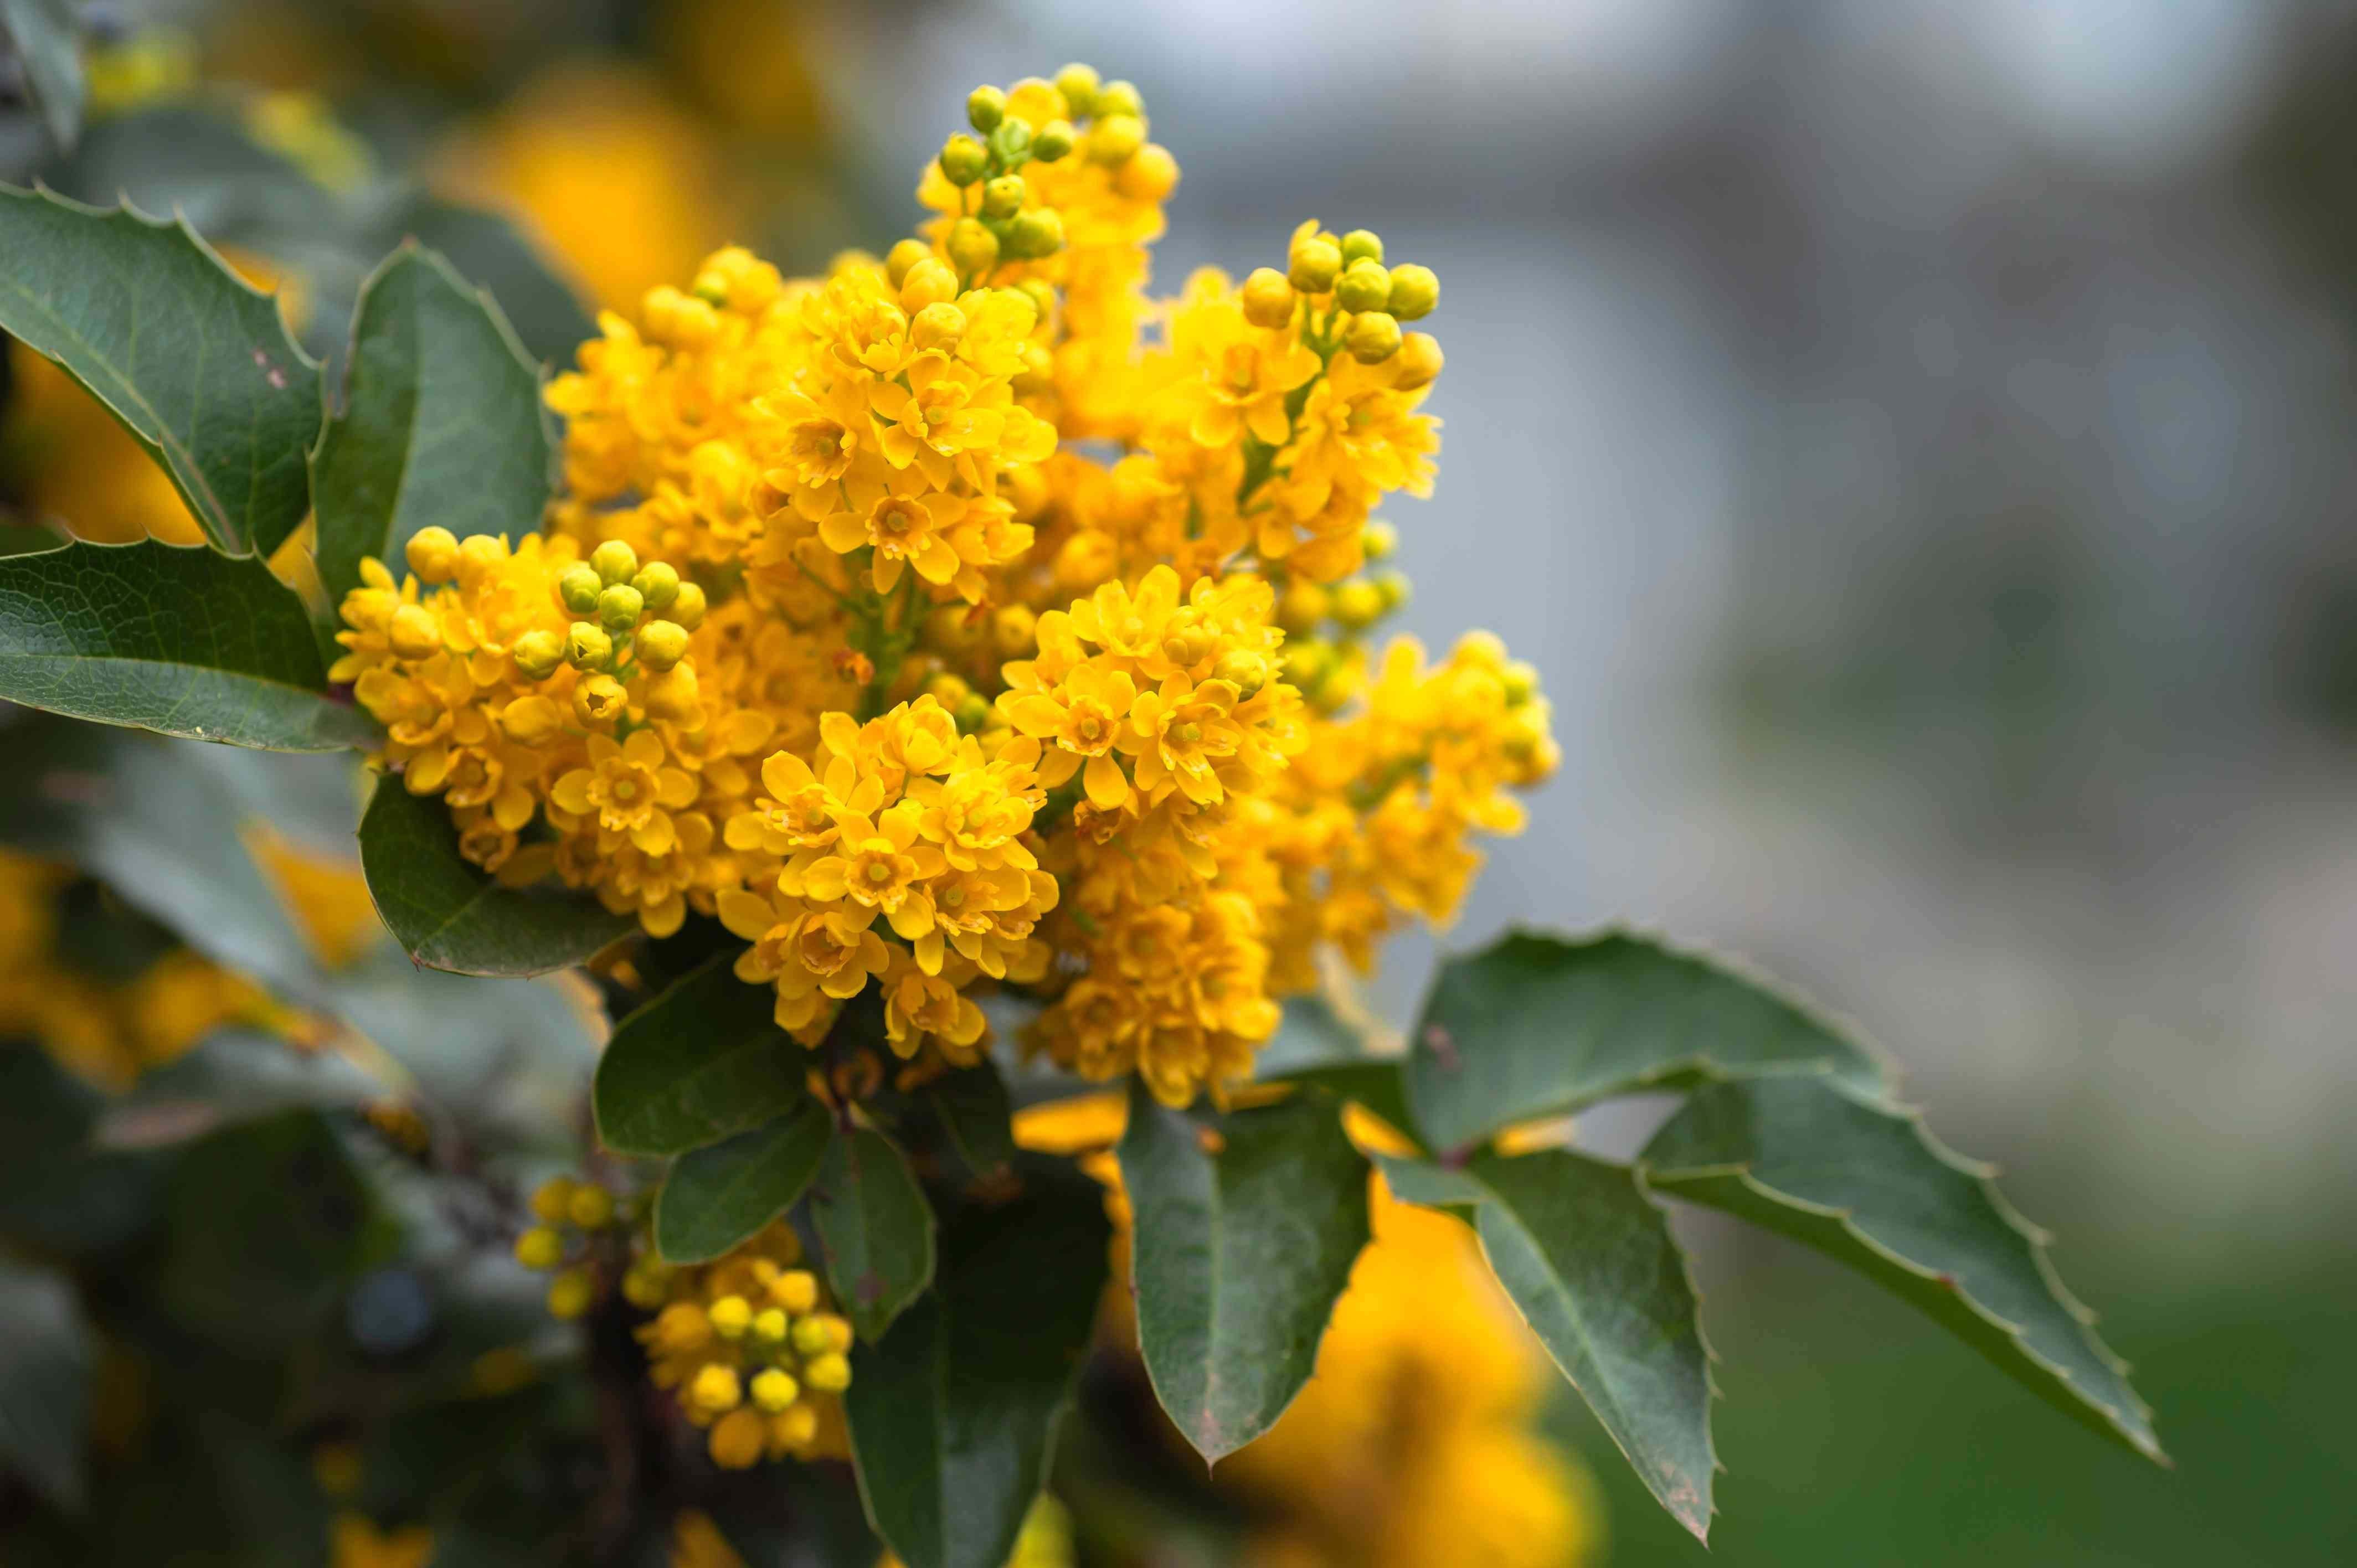 Oregon grape shrub branch with yellow flowers and buds closeup